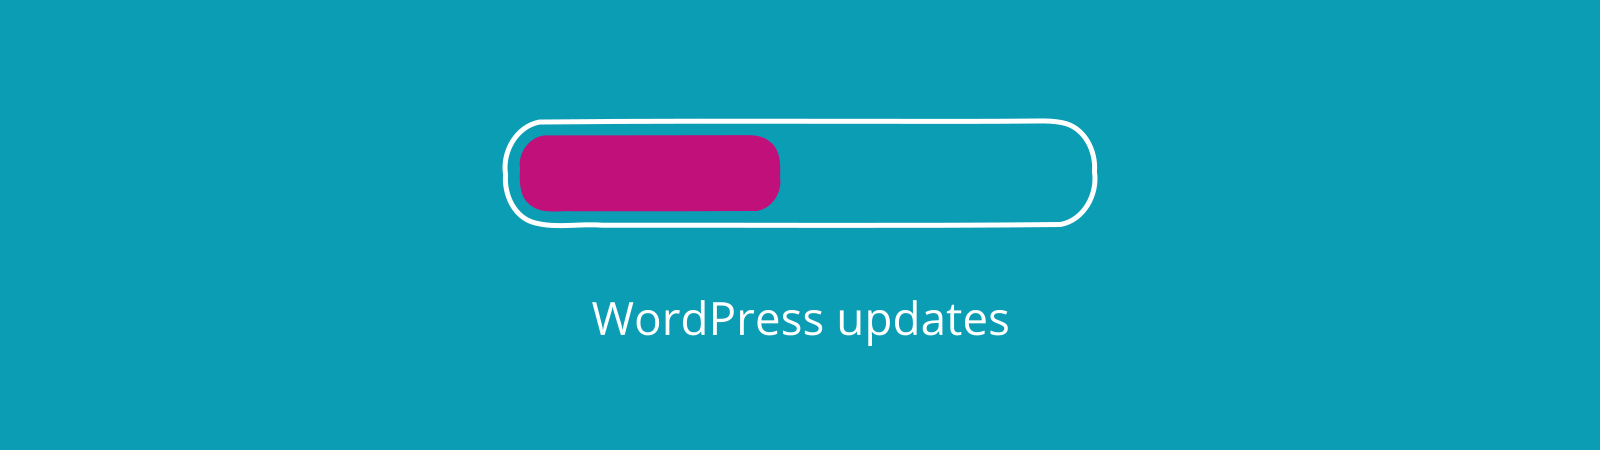 WordPress website security updates for core and plugins